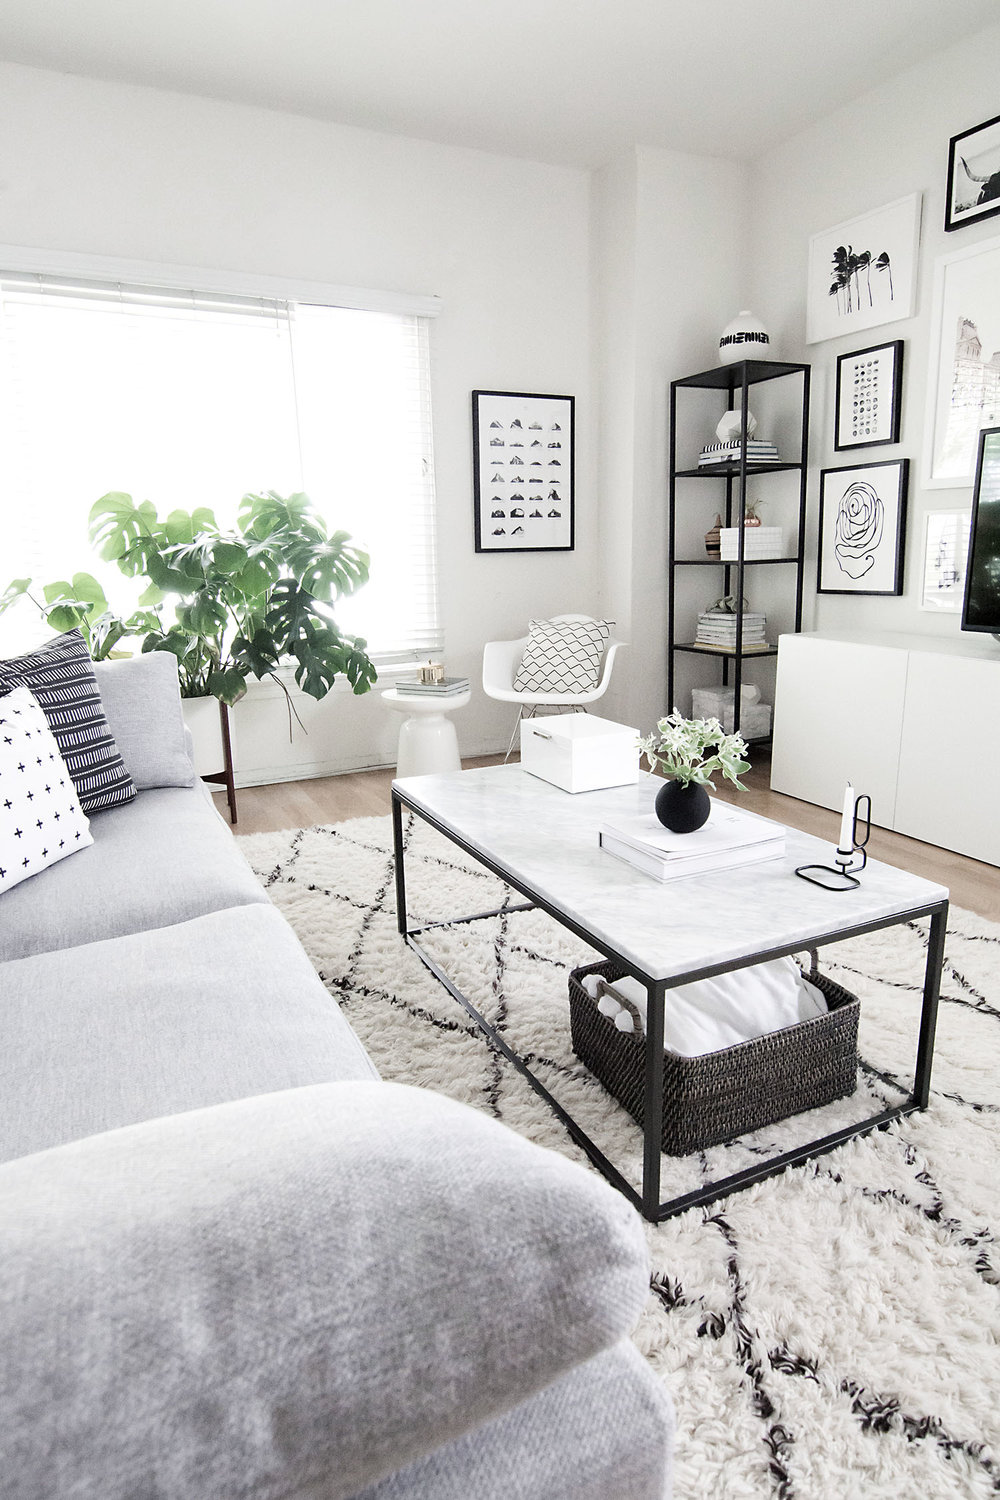 Monochrome-living-room.jpg